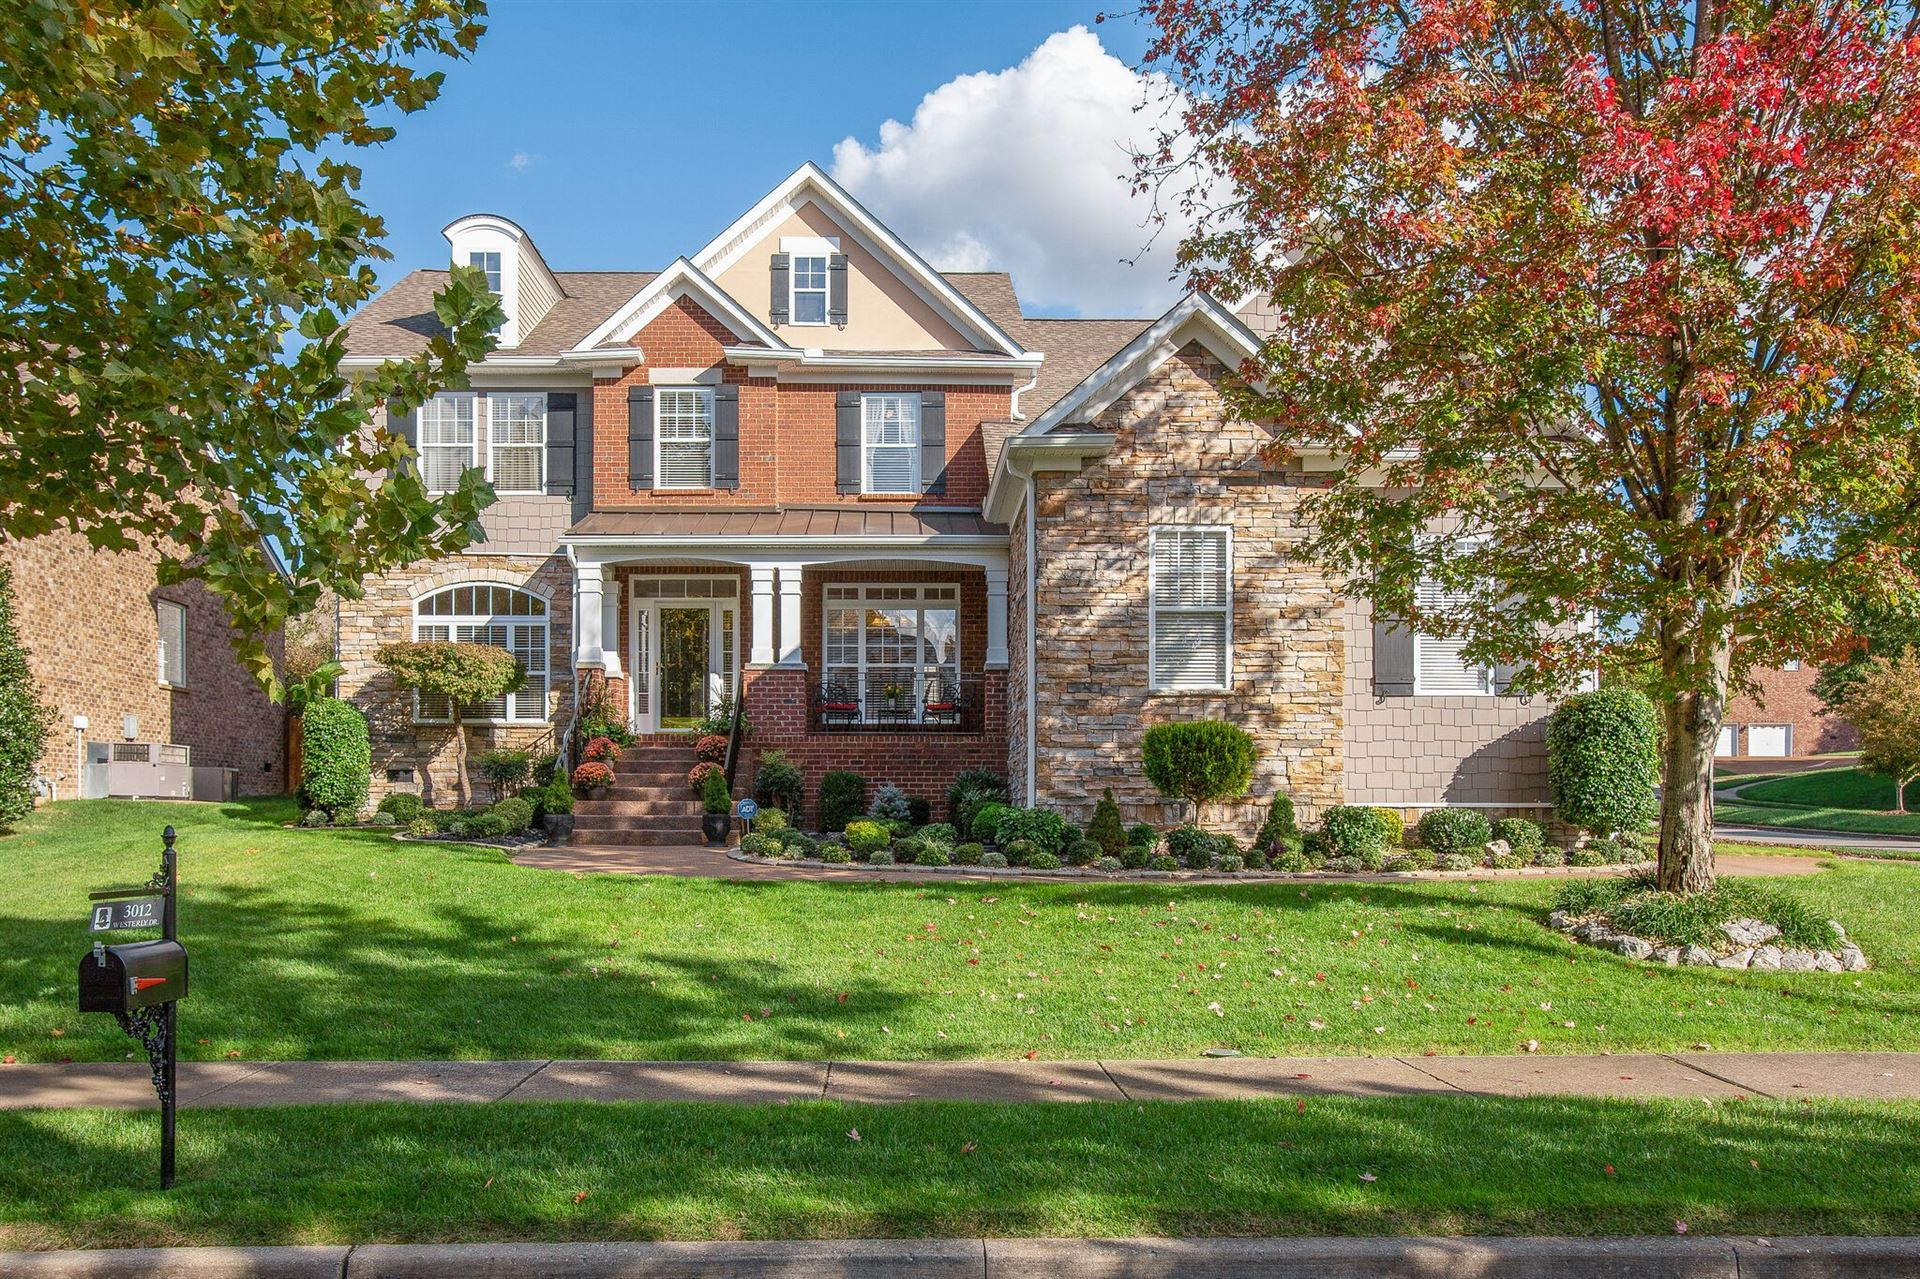 Photo of 3012 Westerly Dr, Franklin, TN 37067 (MLS # 2200816)